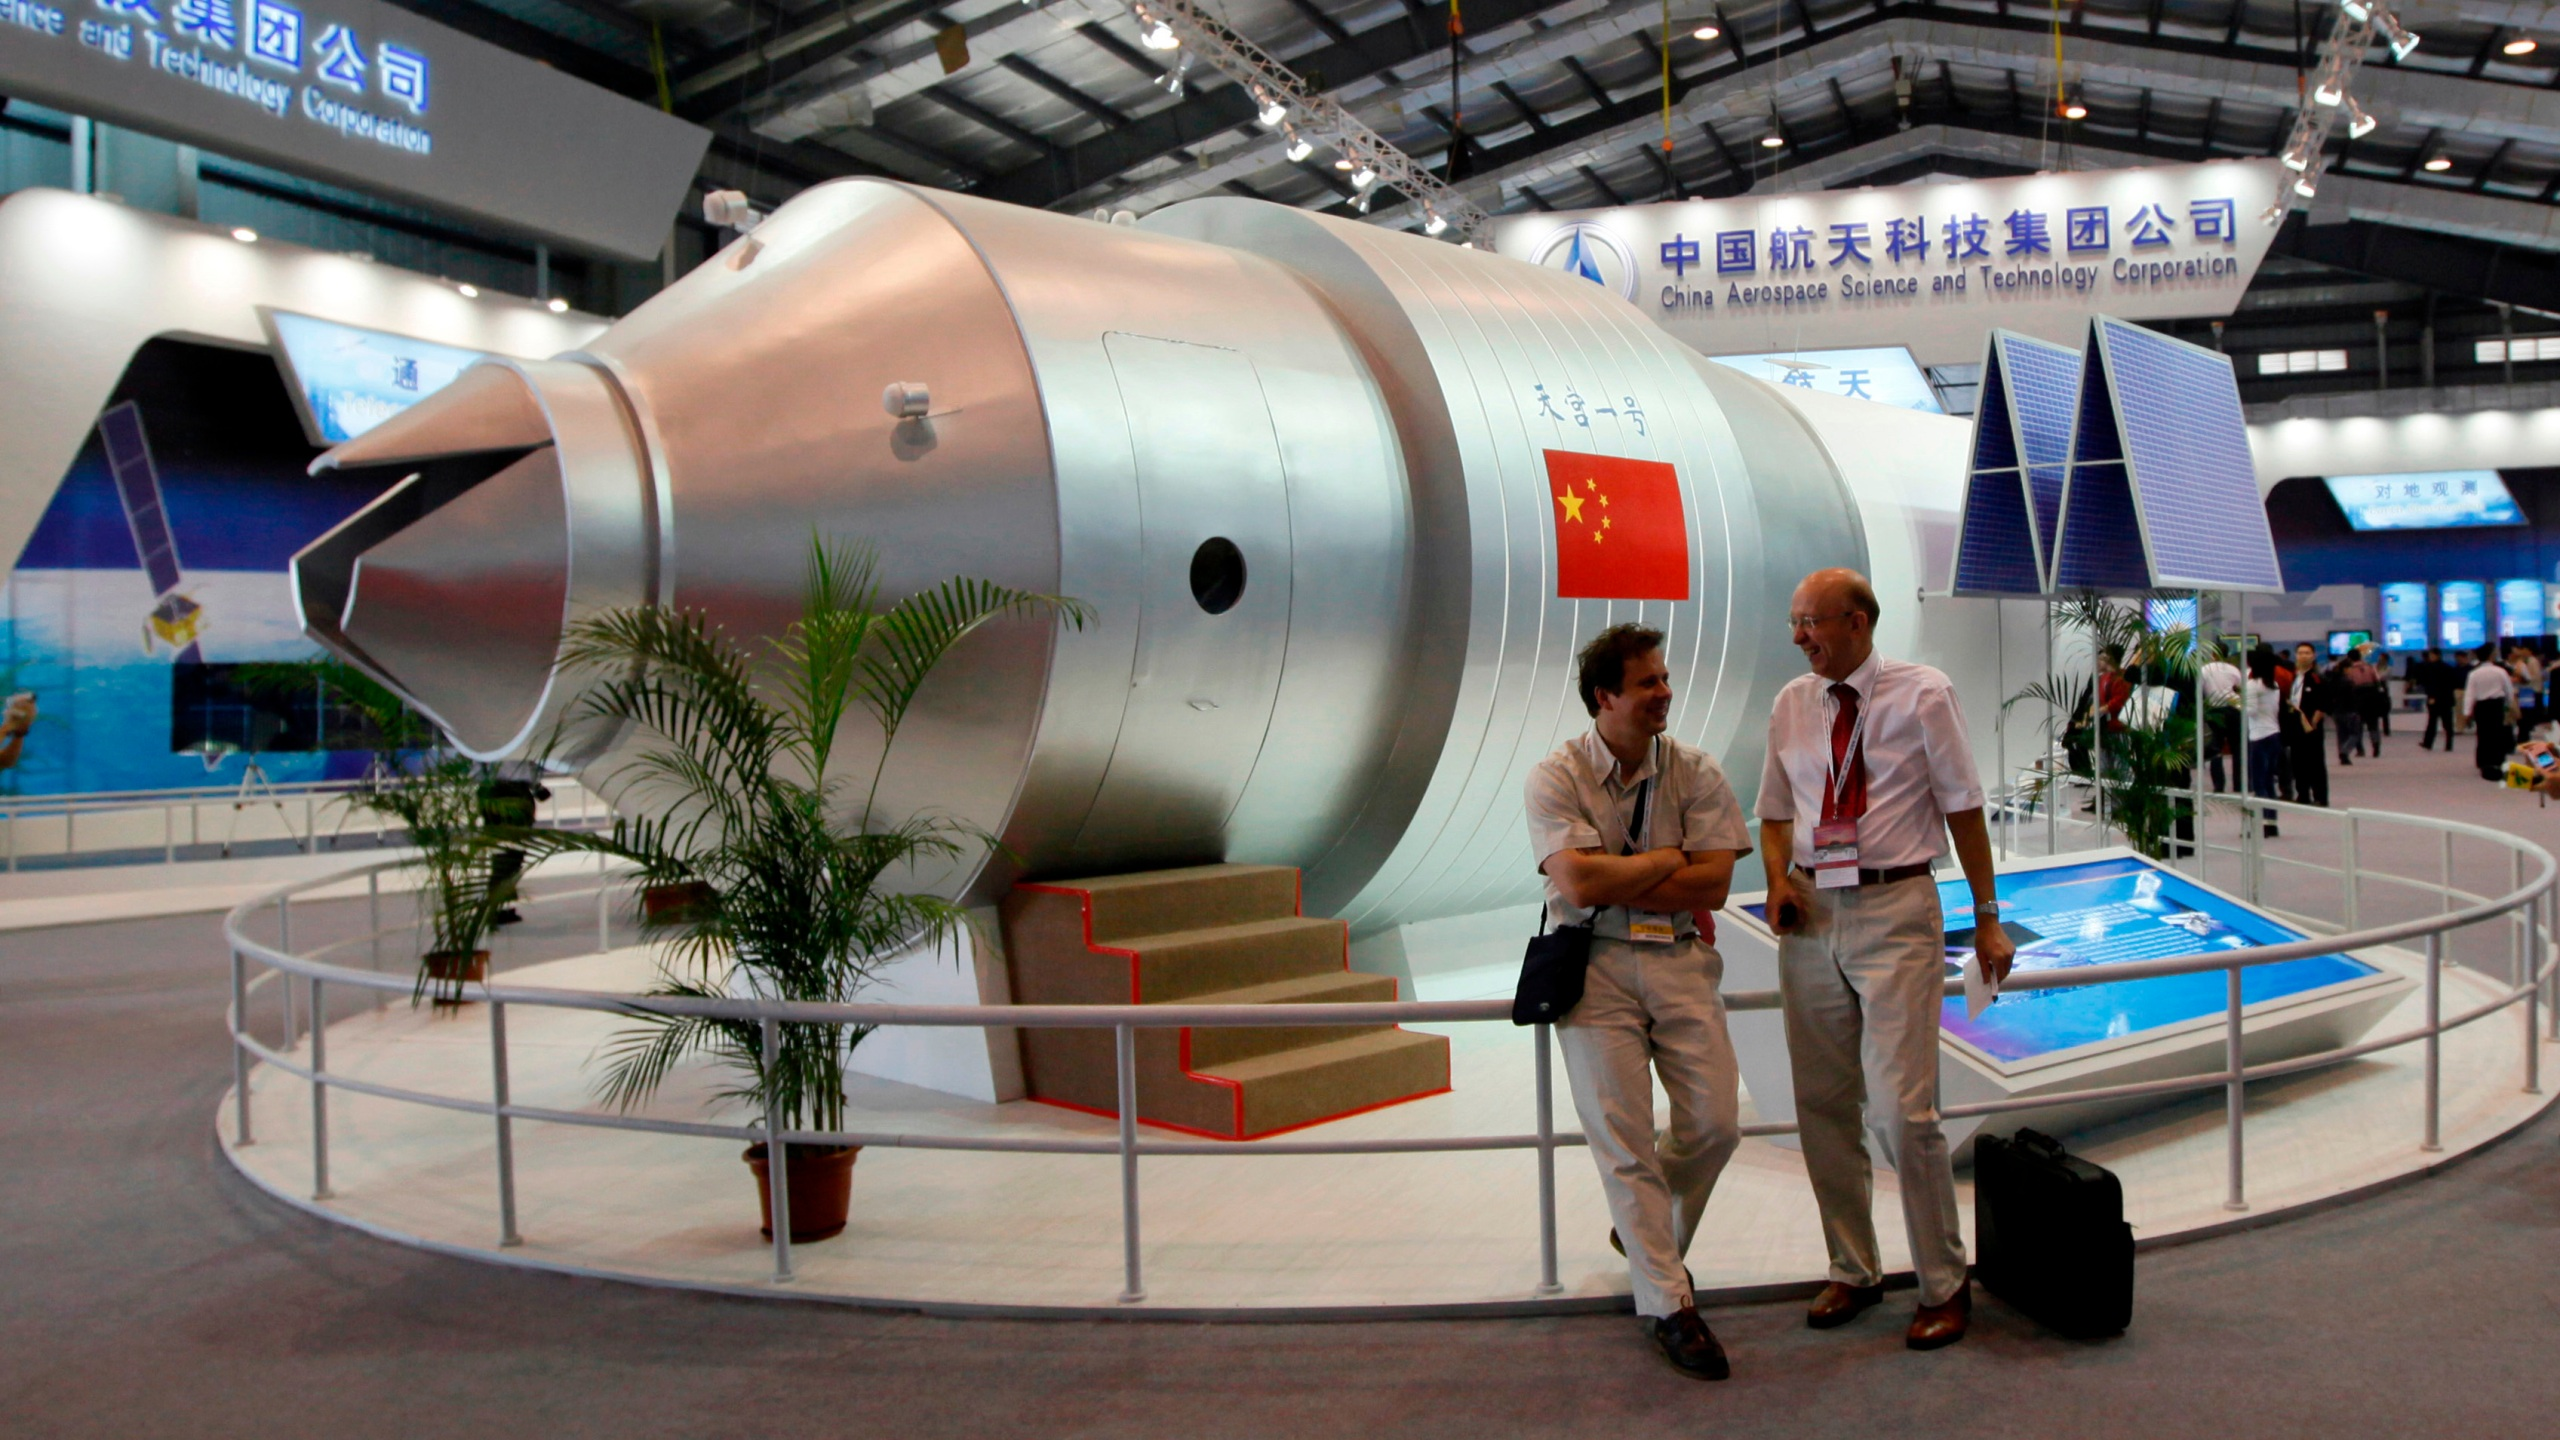 China__Defunct_Space_Station_65313-159532.jpg38761247